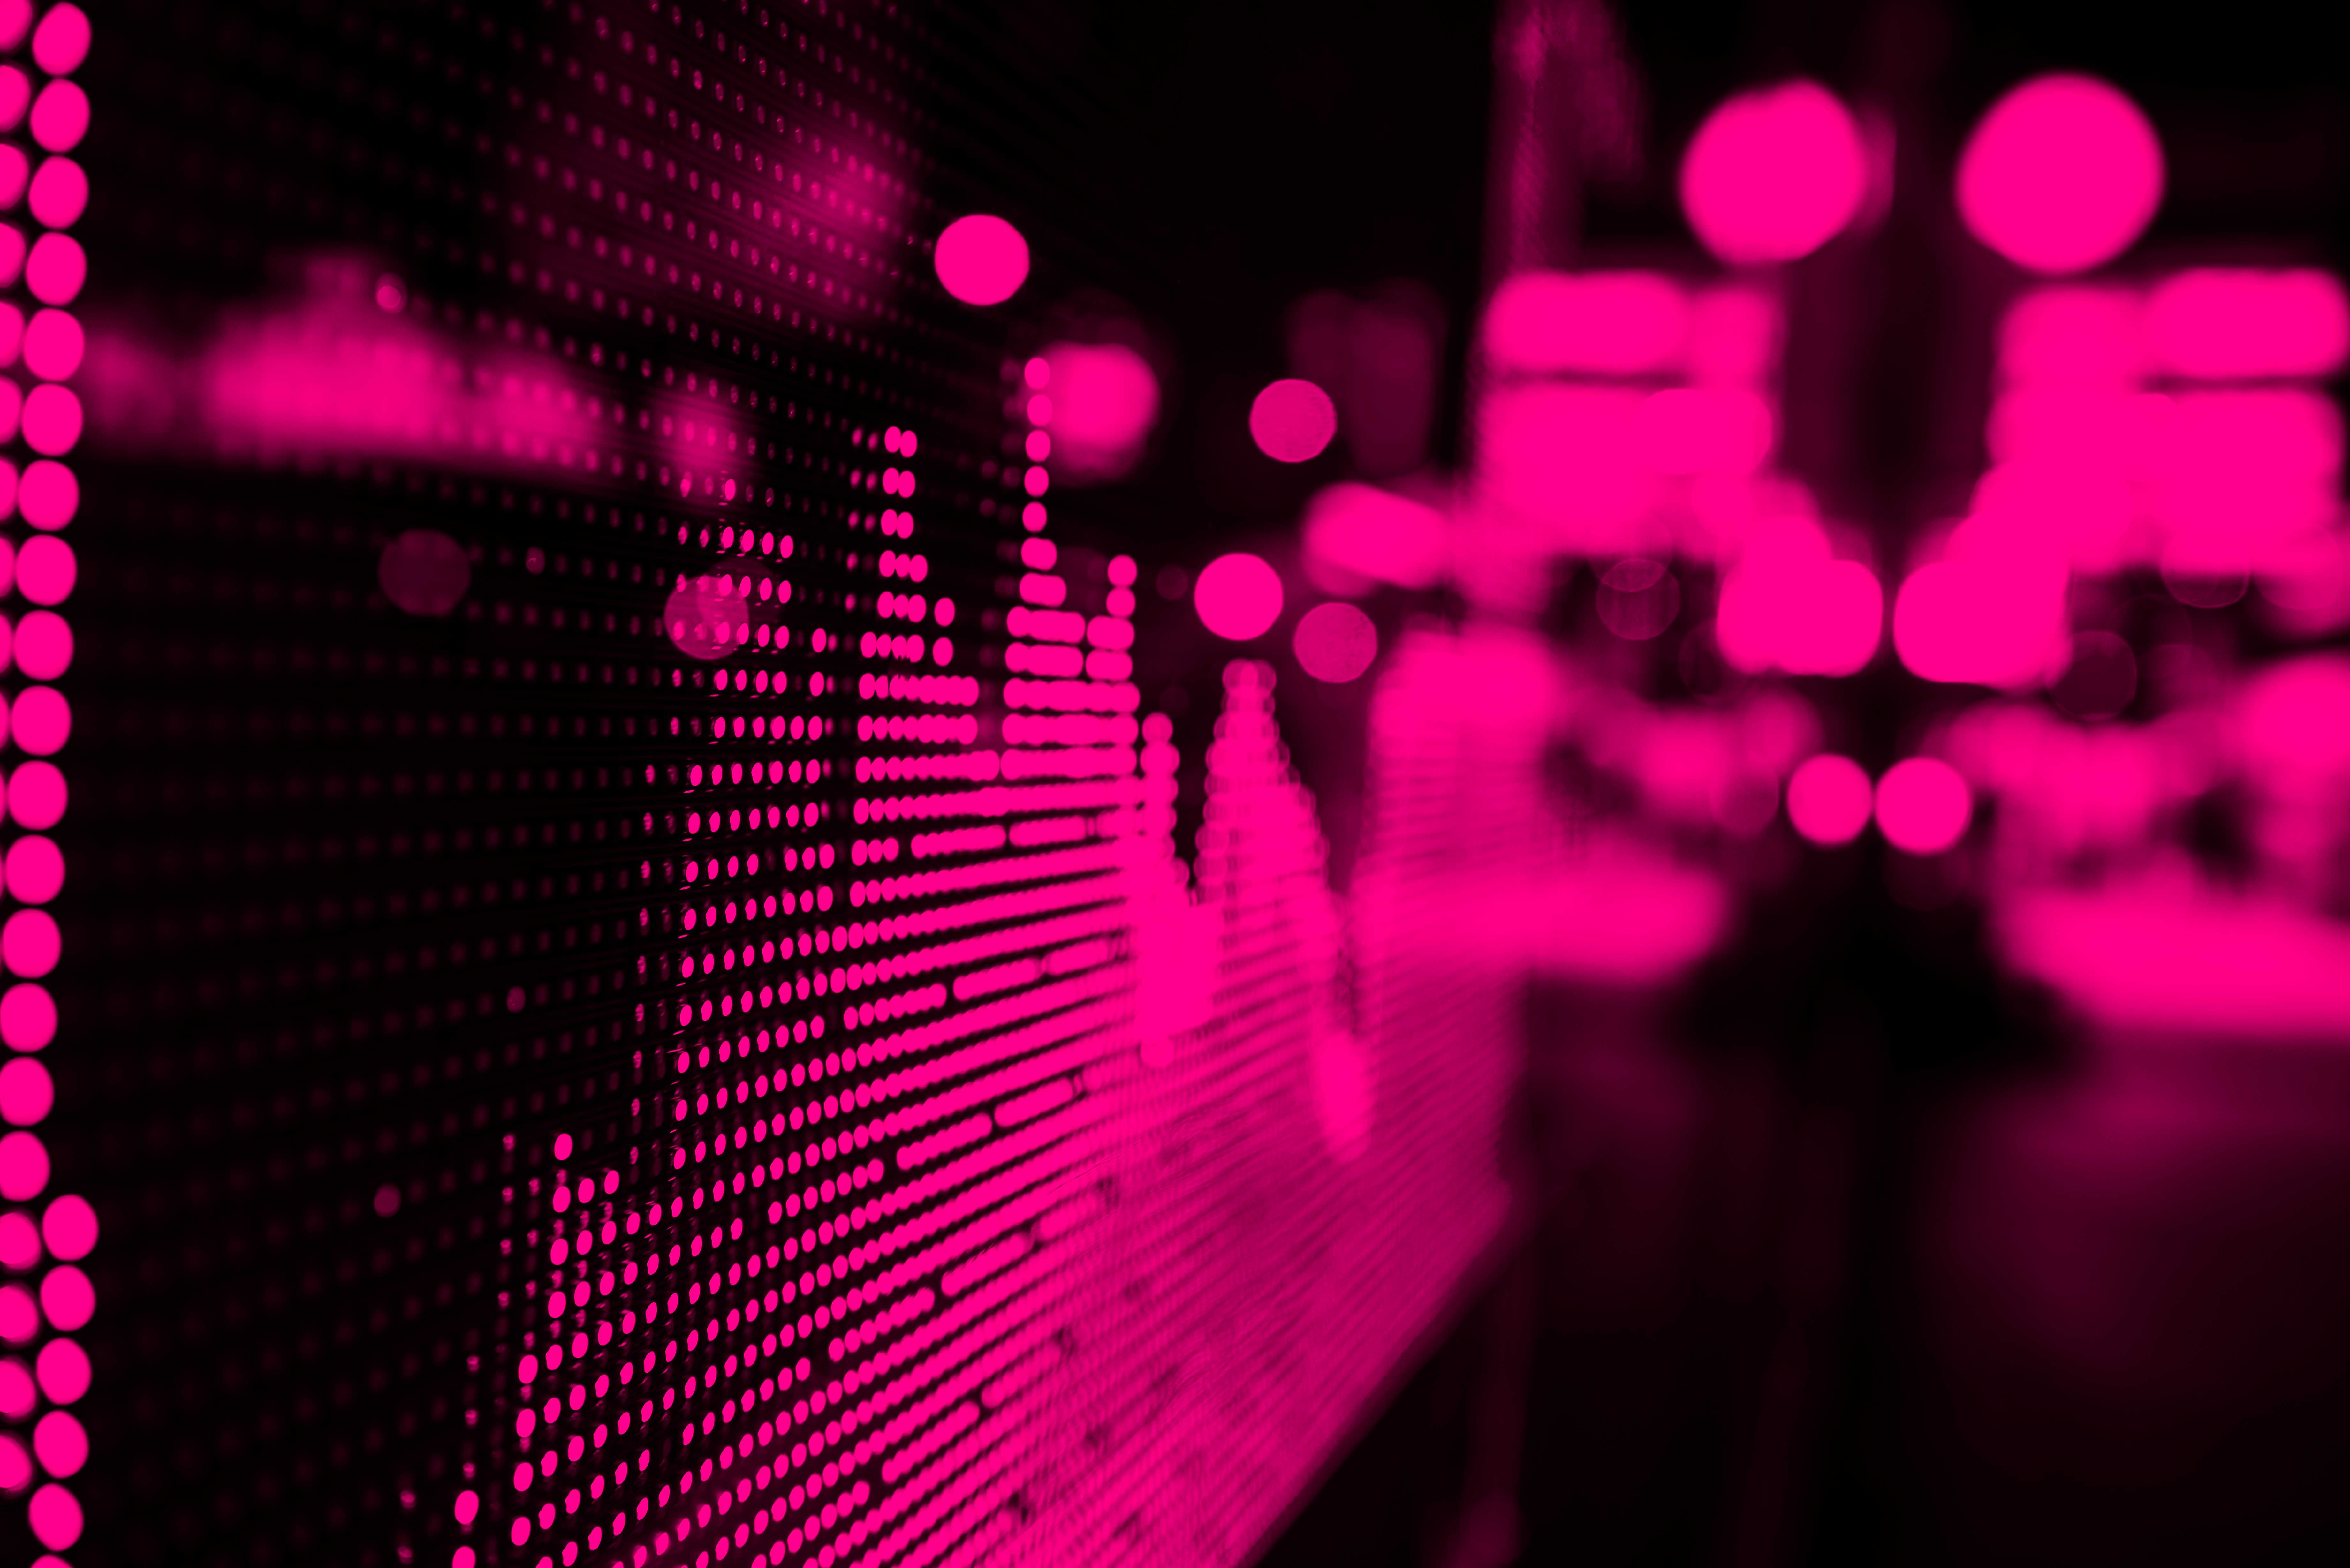 Data_Sign_Lights_Pink.jpg